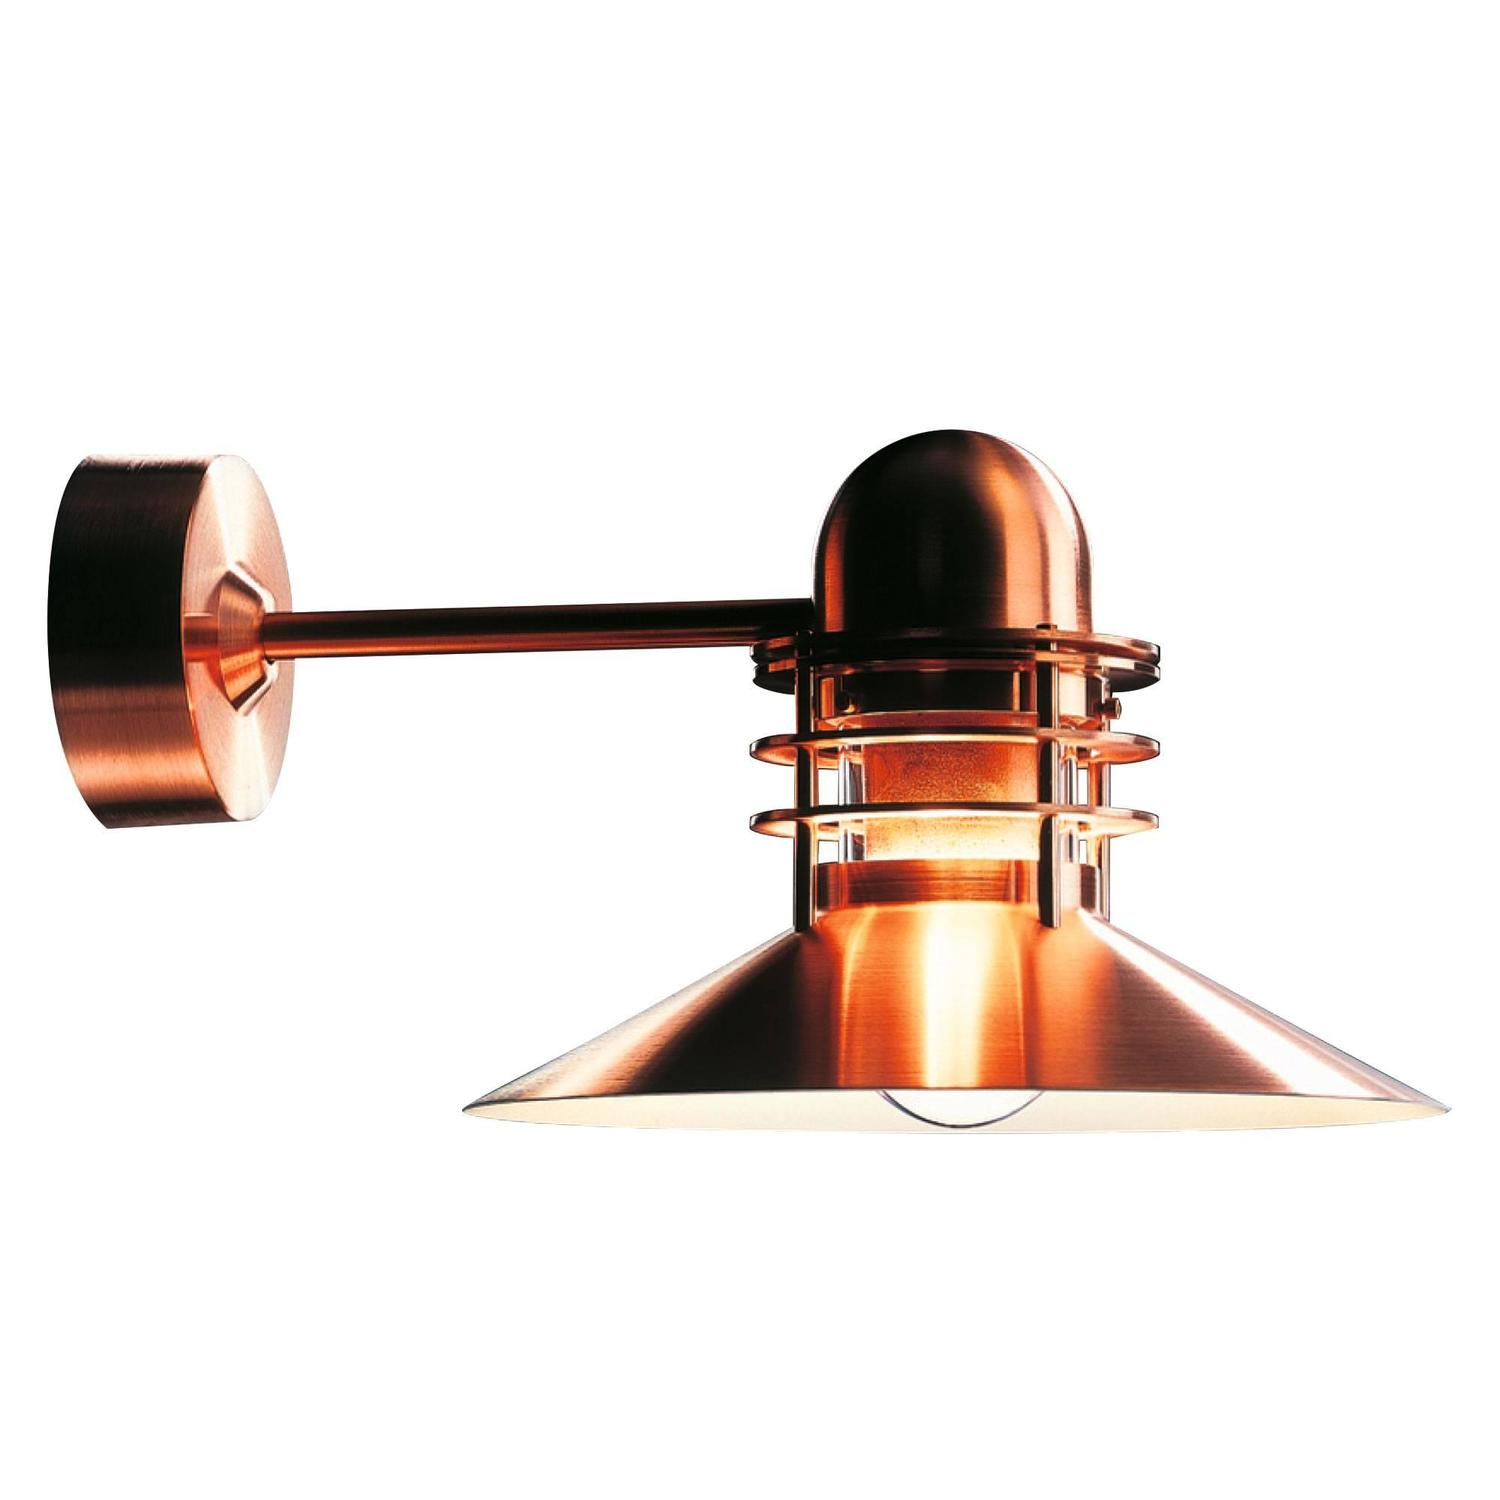 Louis poulsen wall lights and sconces 51 for sale at 1stdibs louis poulsen nyhavn copper outdoor wall sconce amipublicfo Images